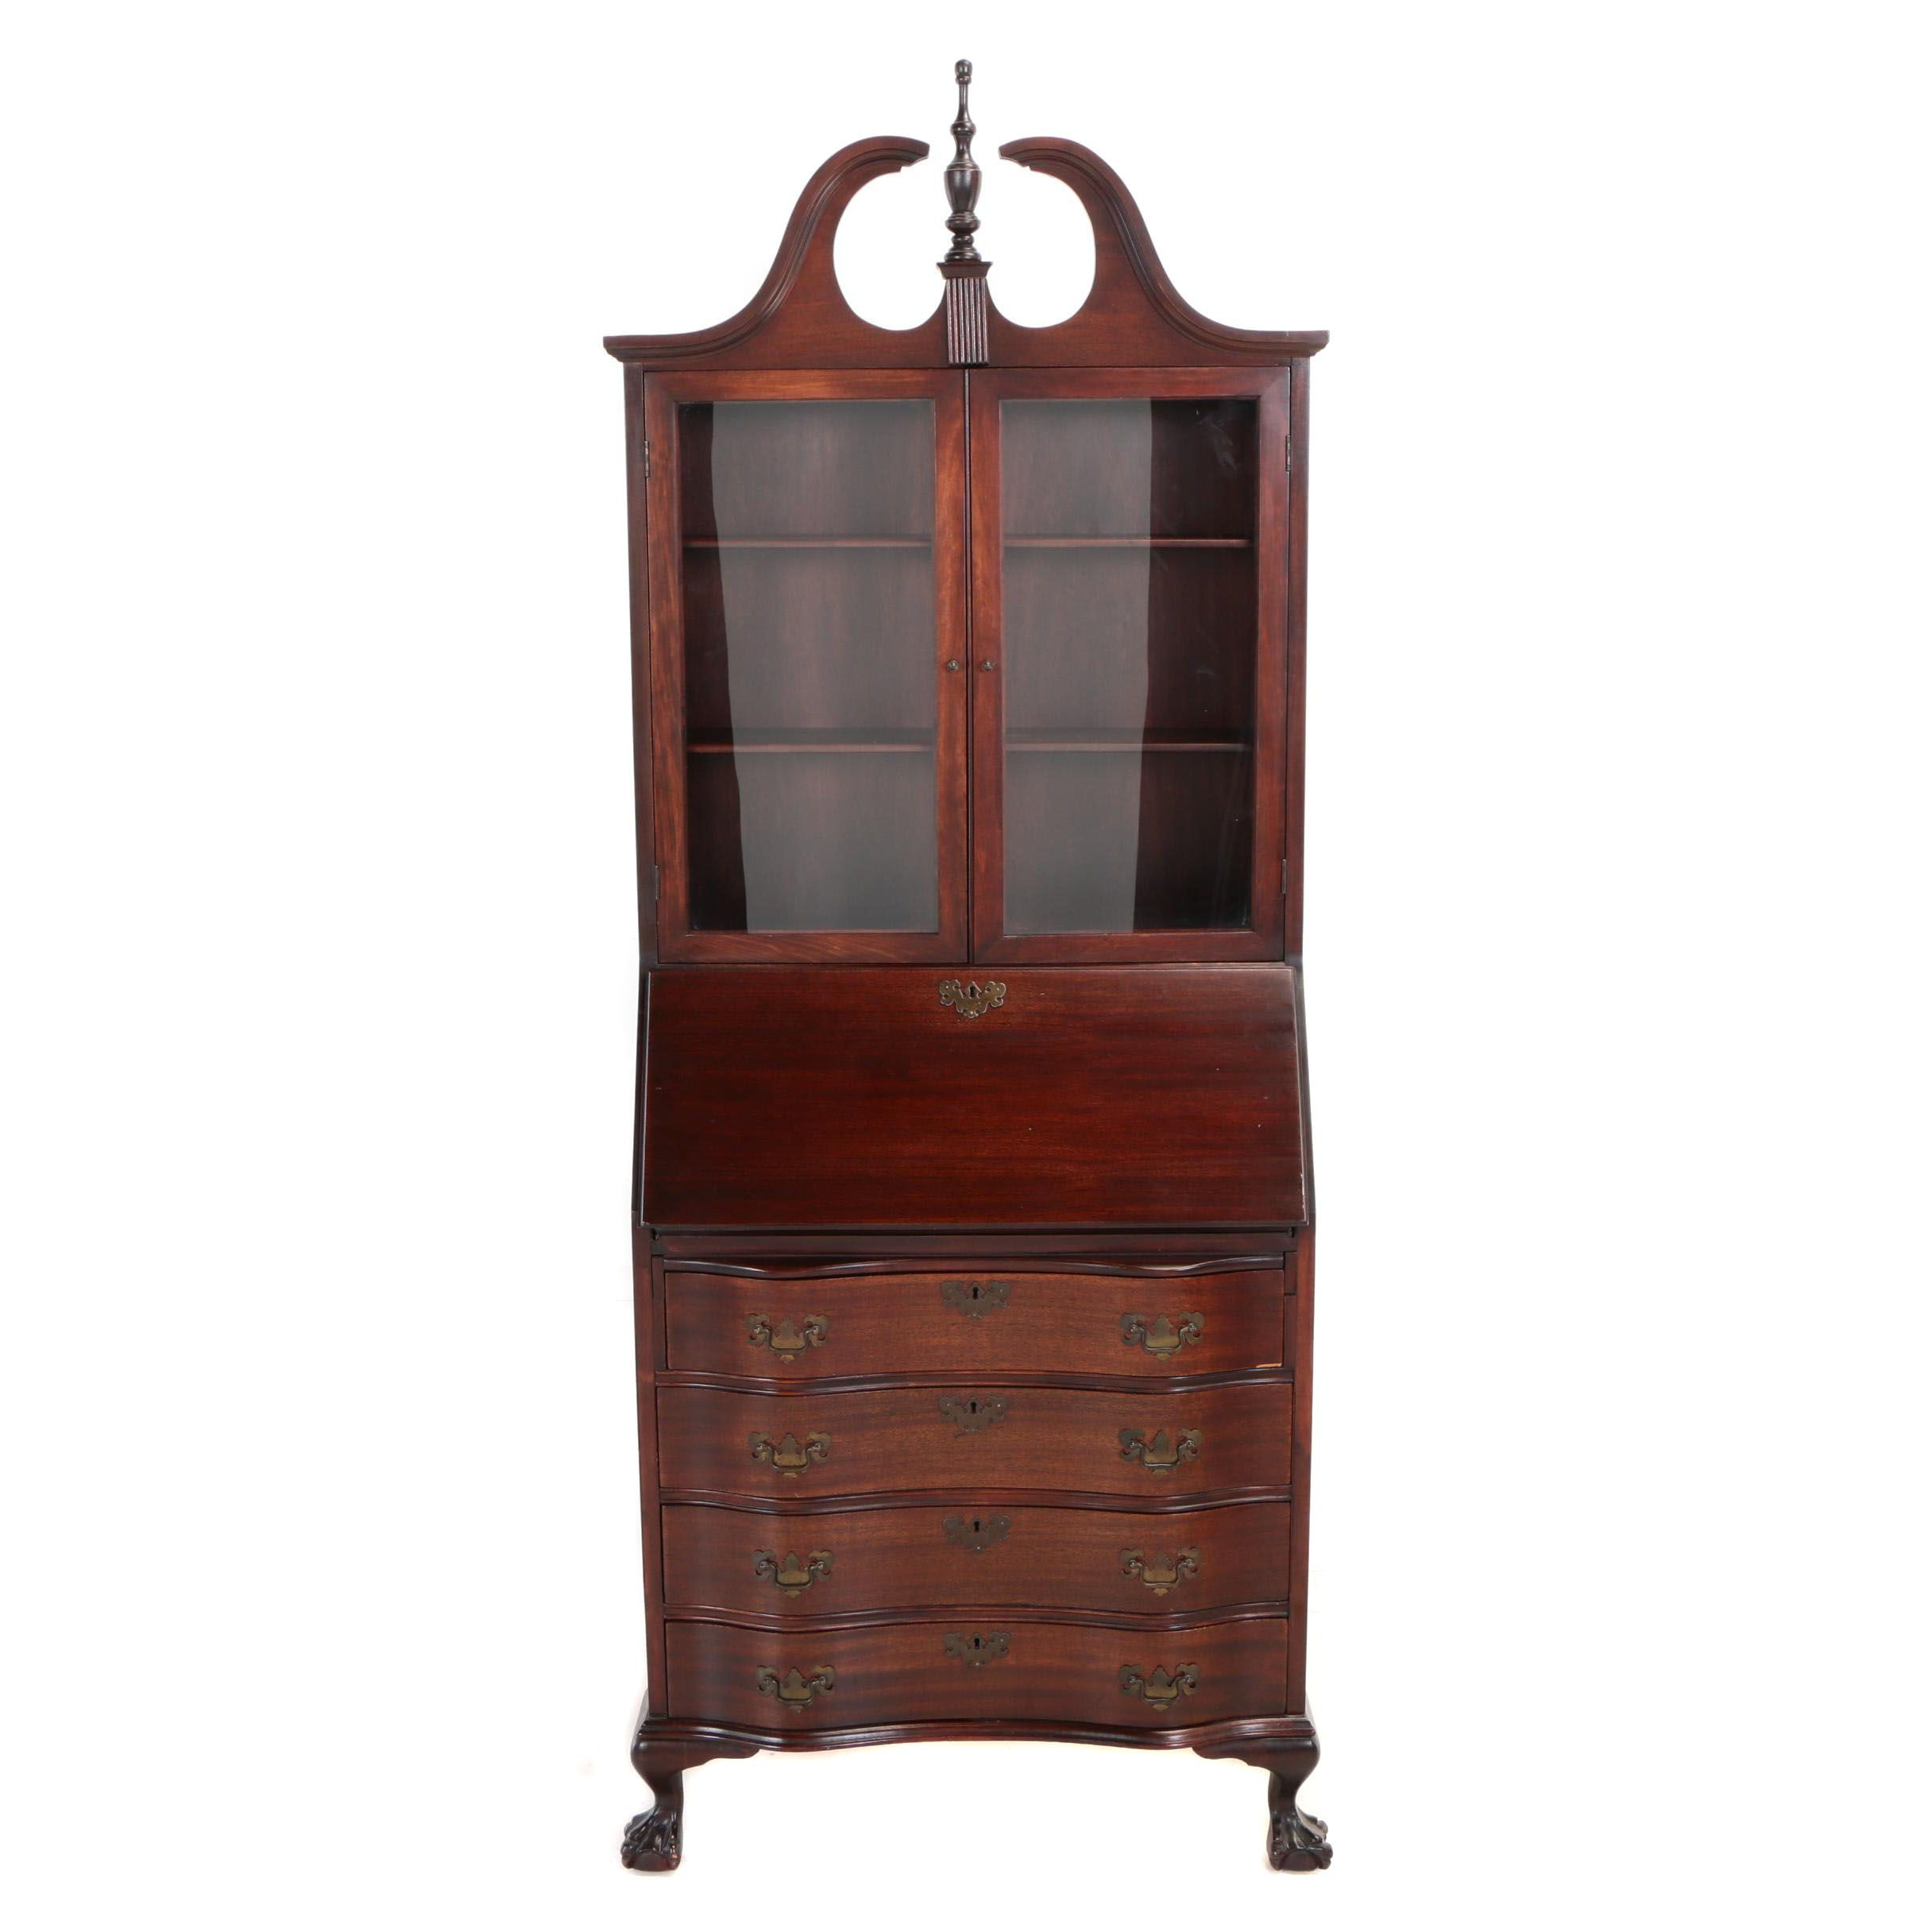 Chippendale Style Mahogany-Veneered and Stained Secretary Bookcase